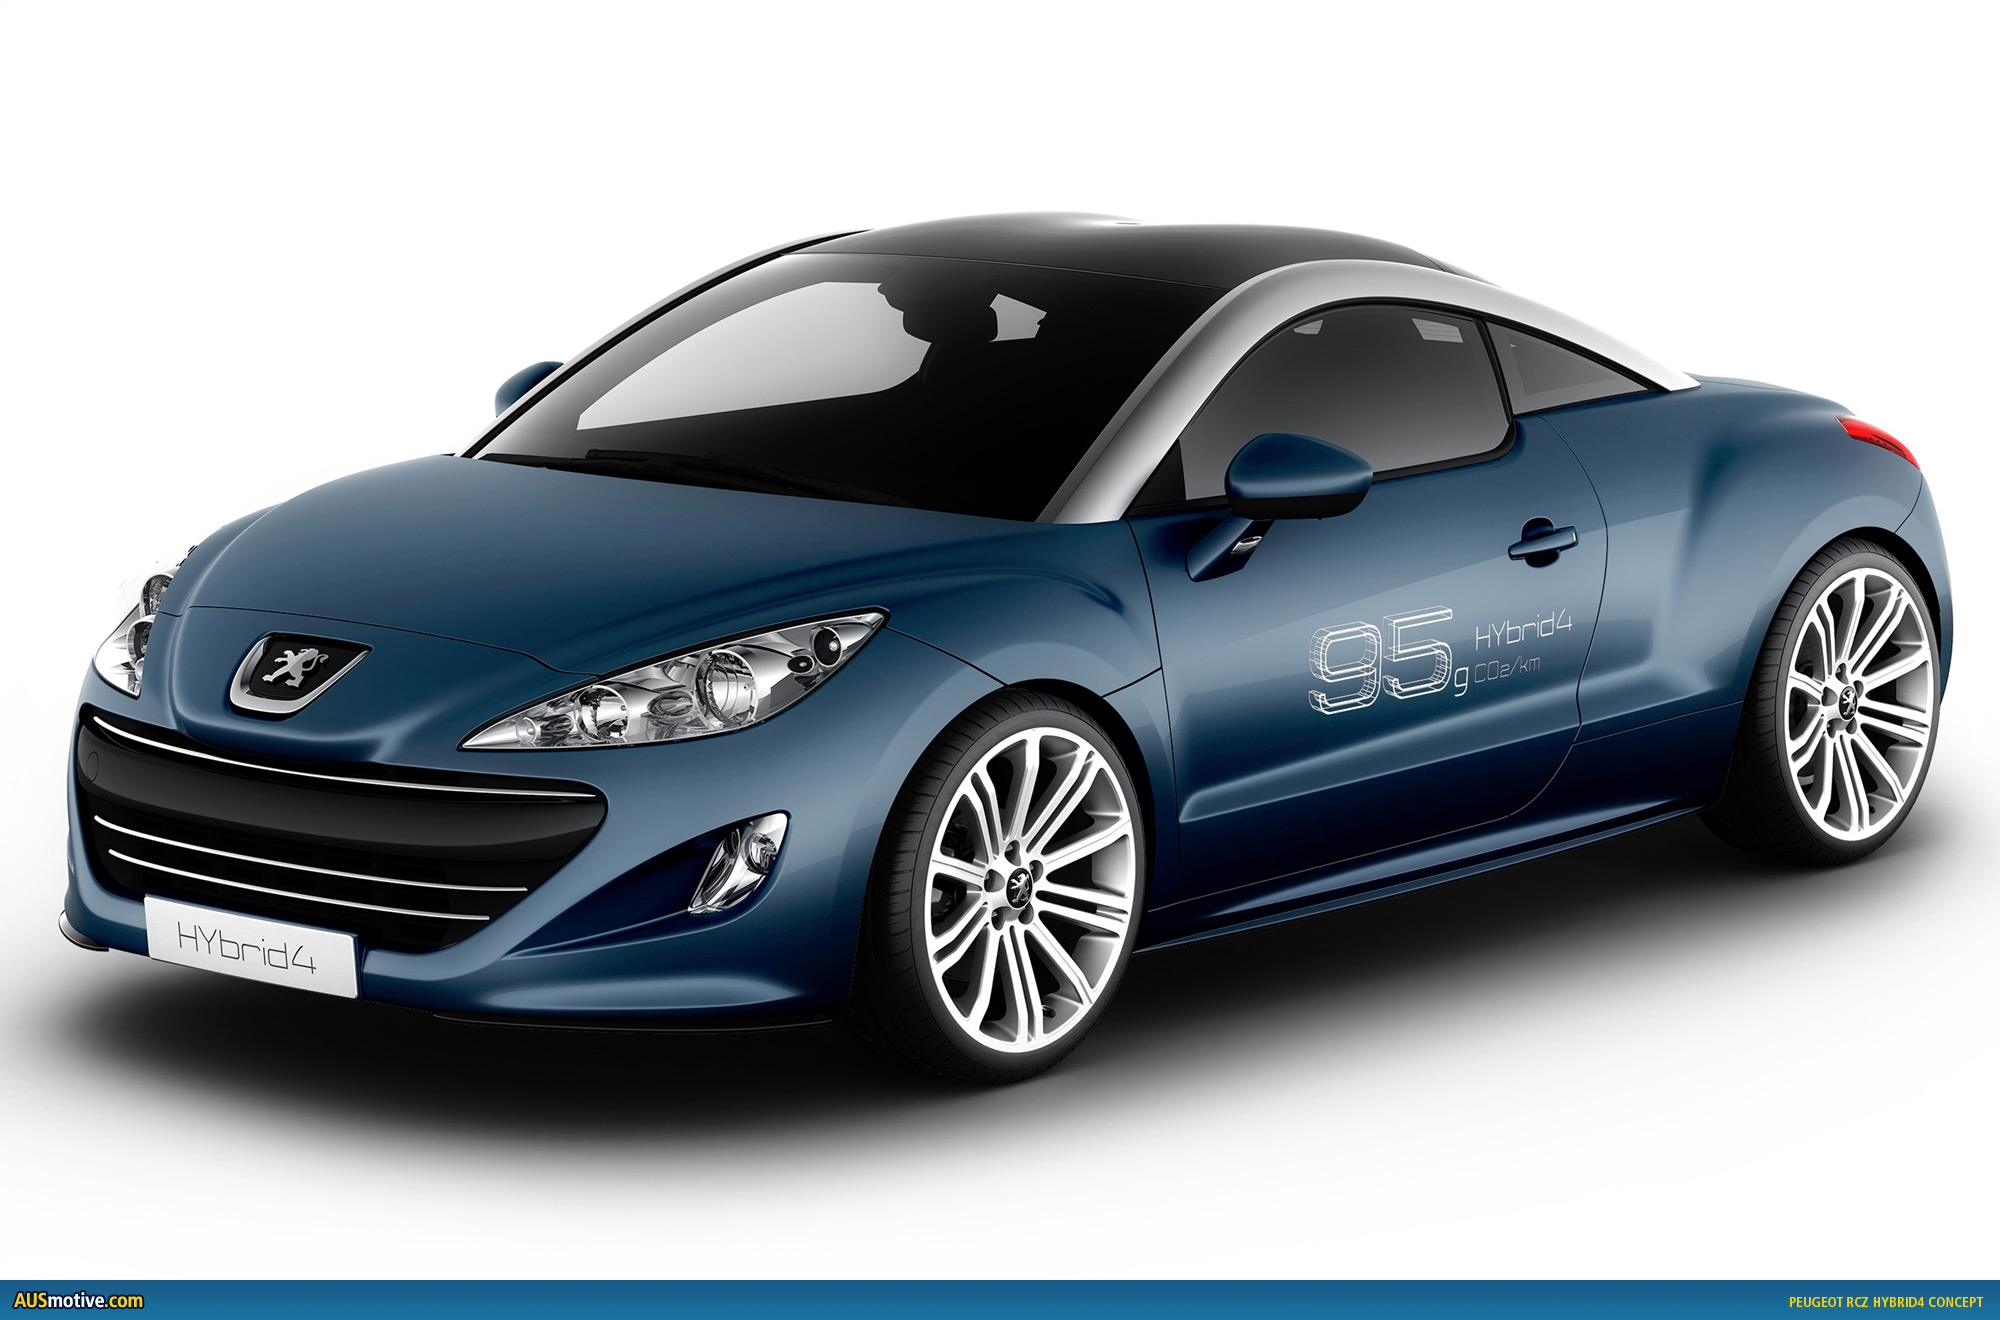 You may remember the pics and details from peugeot s audi tt clone